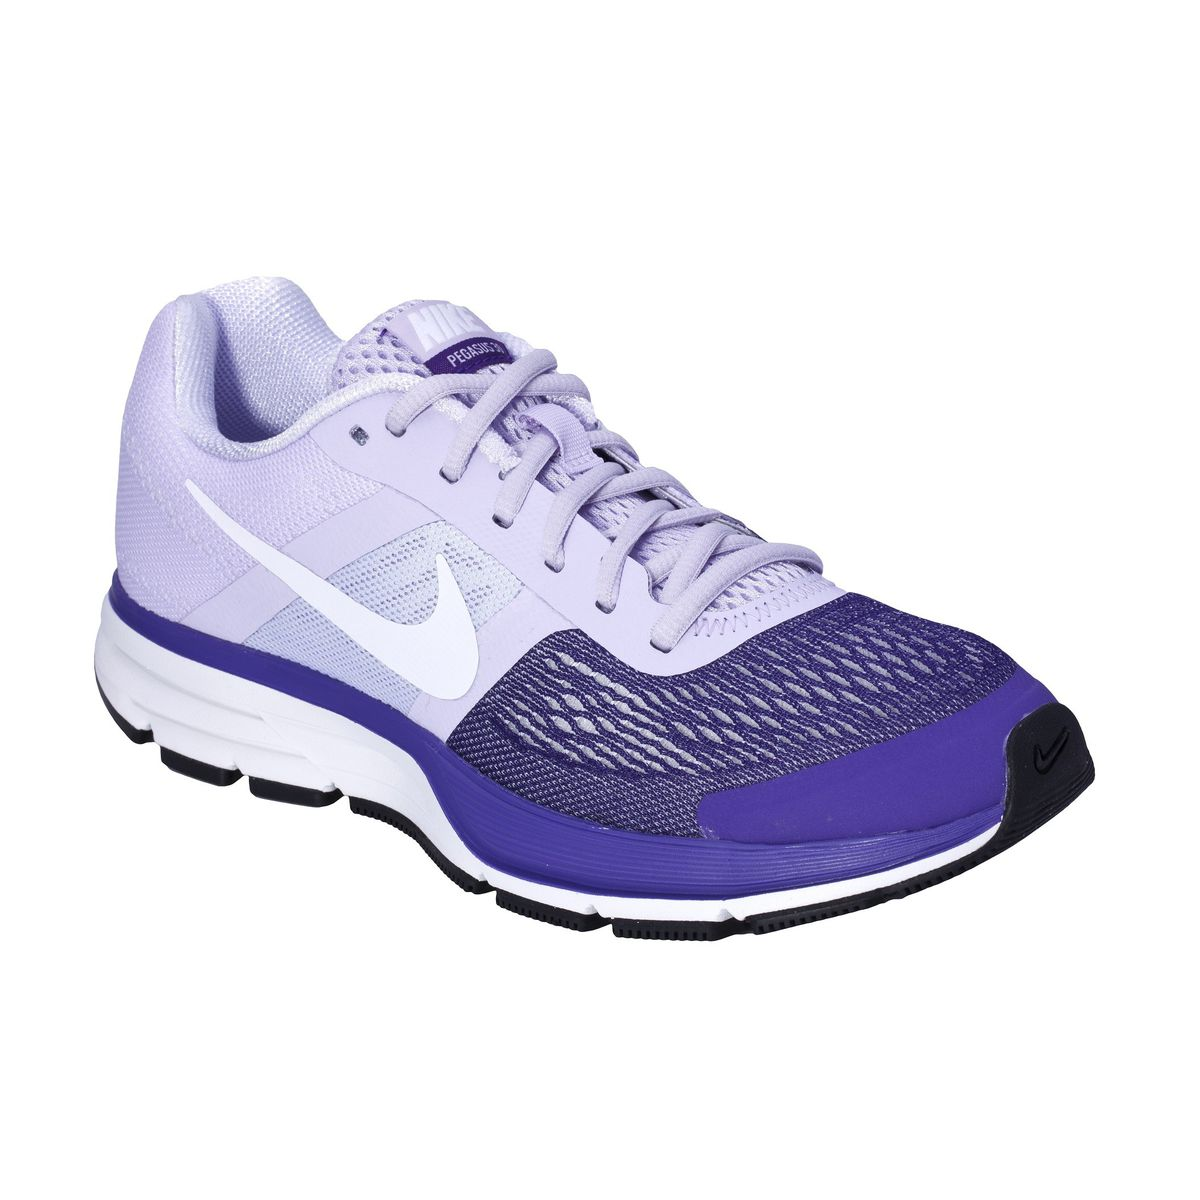 Nike Las Air Pegasus 30 Shoes Ho13 Gbp The Women 39 S Running Shoe